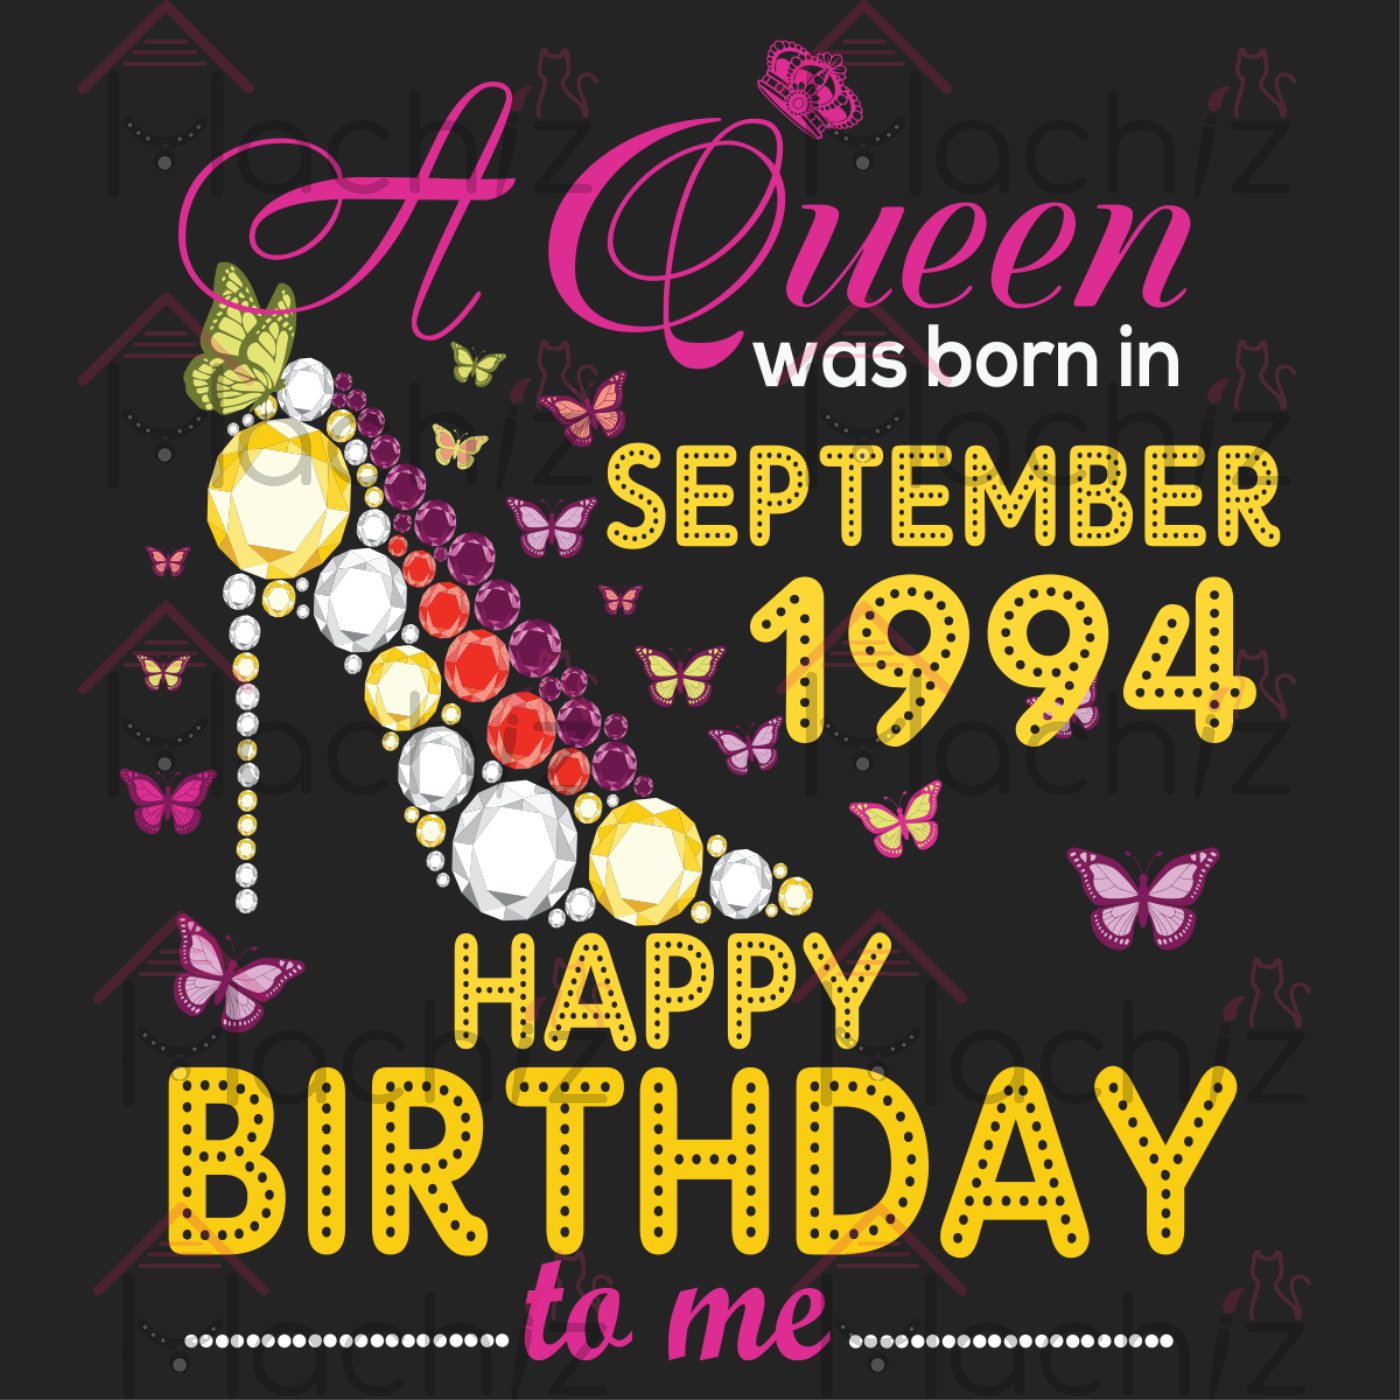 A Queen was born in September 1994 Happy Birthday to me, Birthday Svg, Birthday Queen svg, born in September, September Birthday, born in 1994, birthday gift, birthday anniversary, Queen birthday, birthday Queen